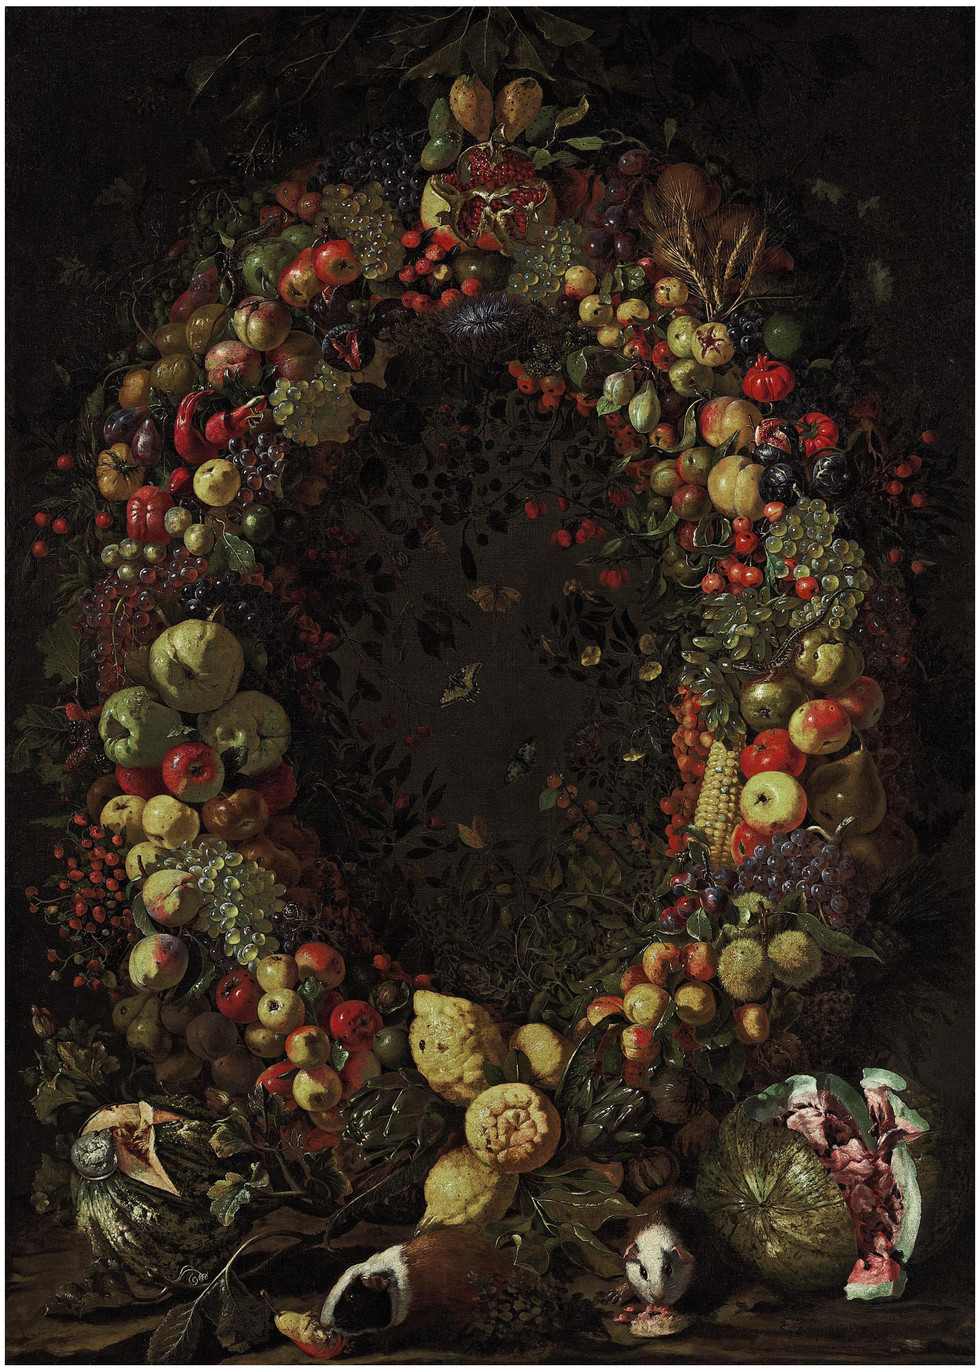 A Garland of Fruit with Guinea Pigs and Watermelons